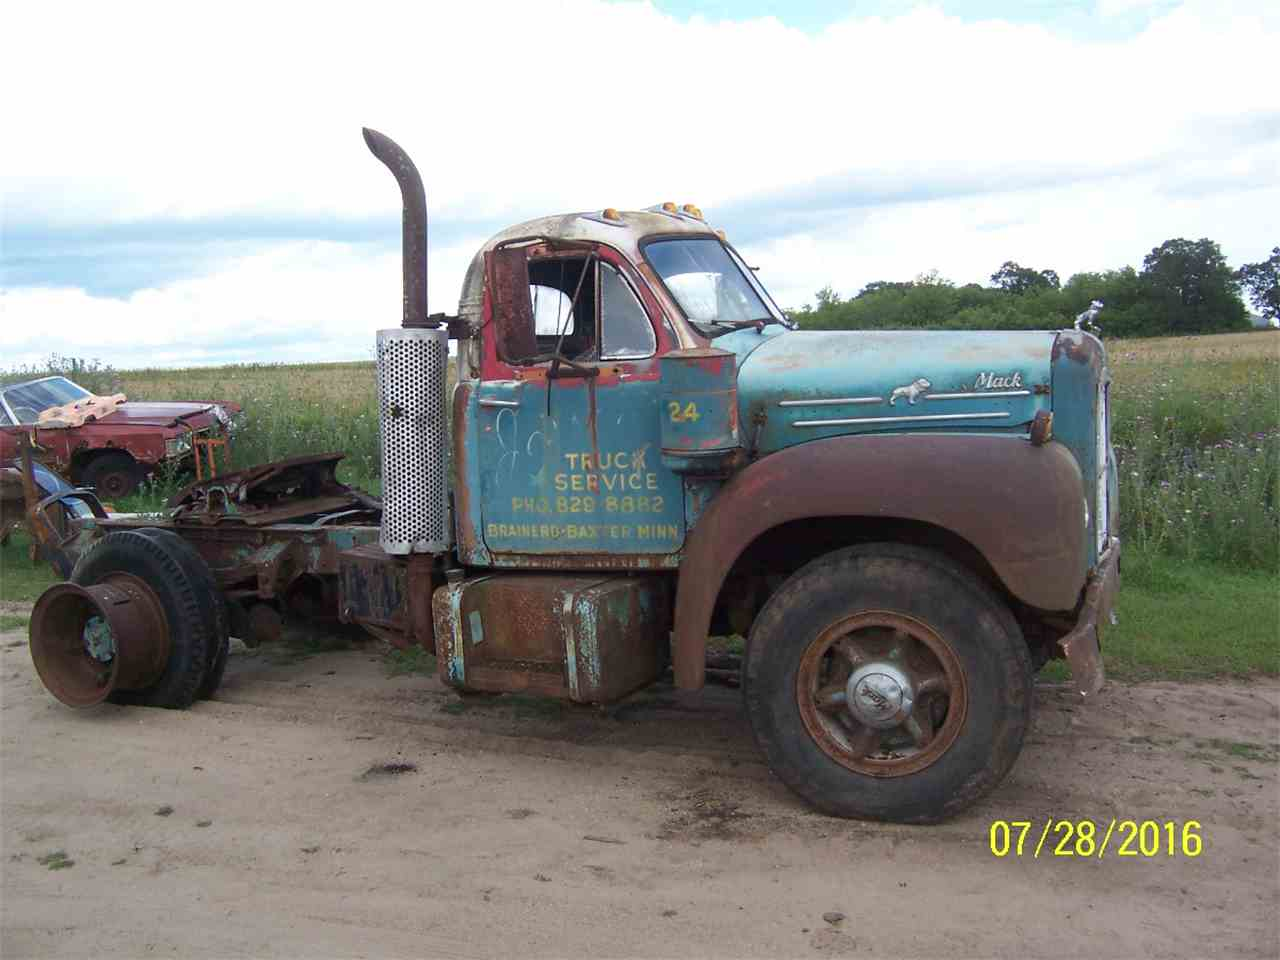 1957 mack b61 truck 975508 - Rusty Old Cars For Sale